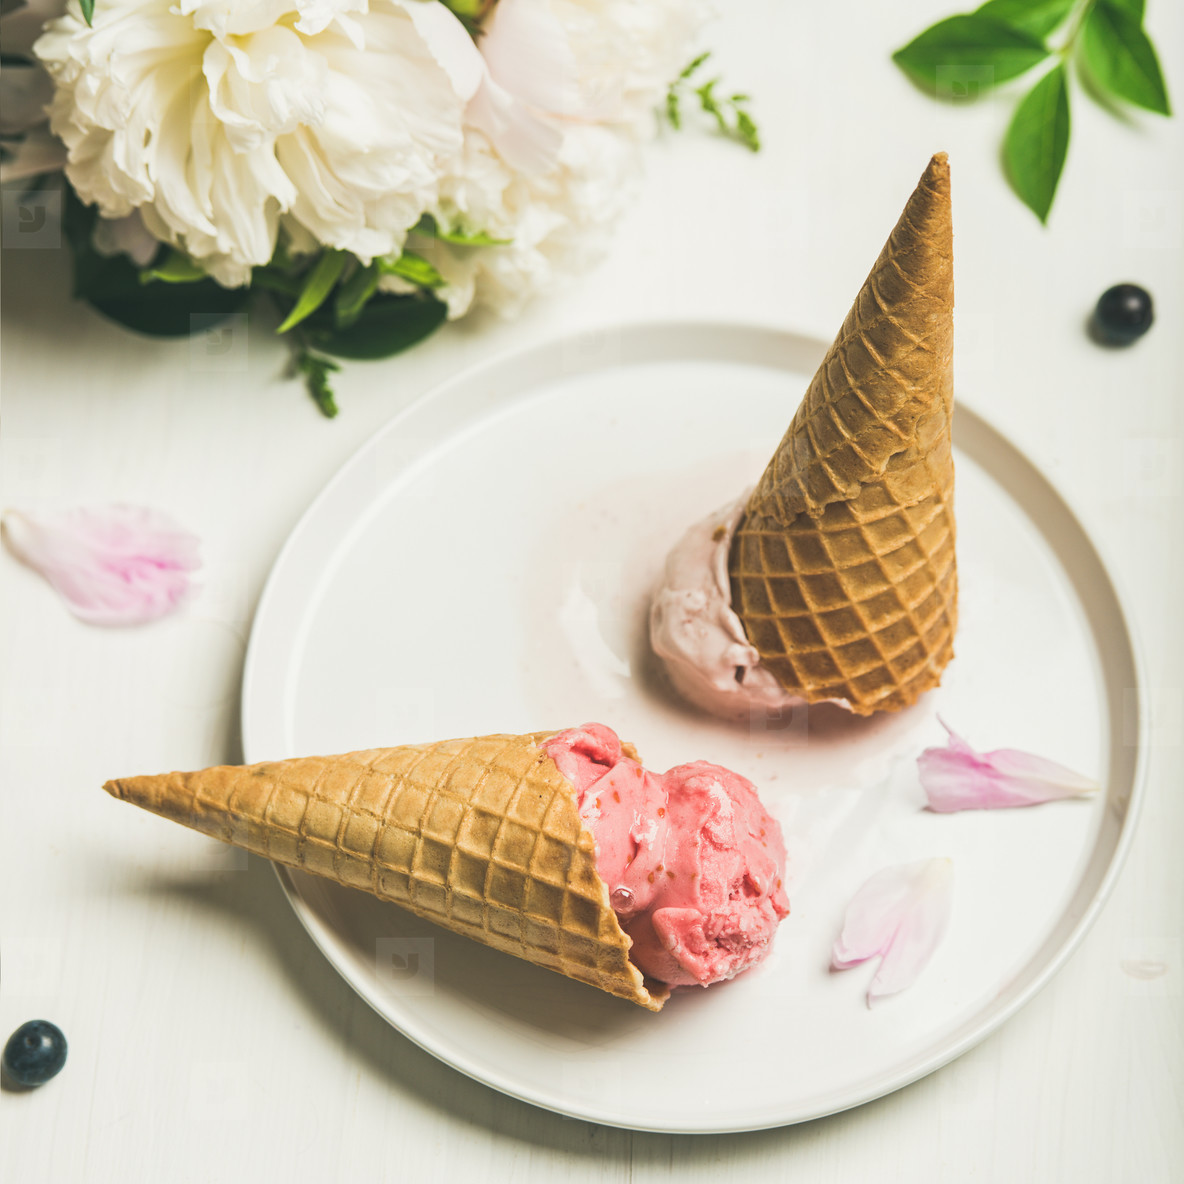 Ice cream scoops and peonies over white background  square crop